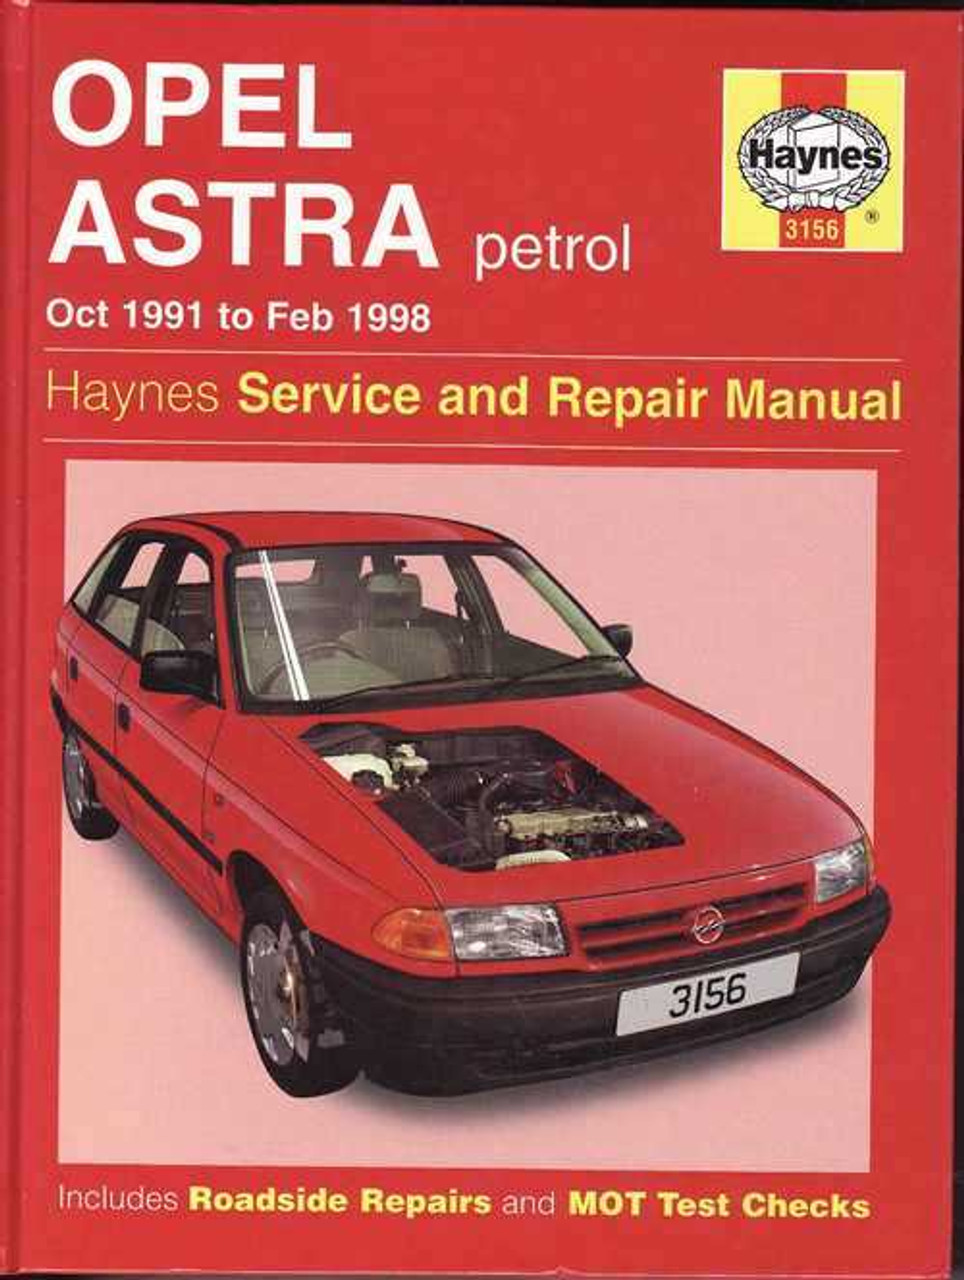 holden astra opel petrol 1991 1998 workshop manual rh automotobookshop com au opel astra pdf manuel opel astra manual download